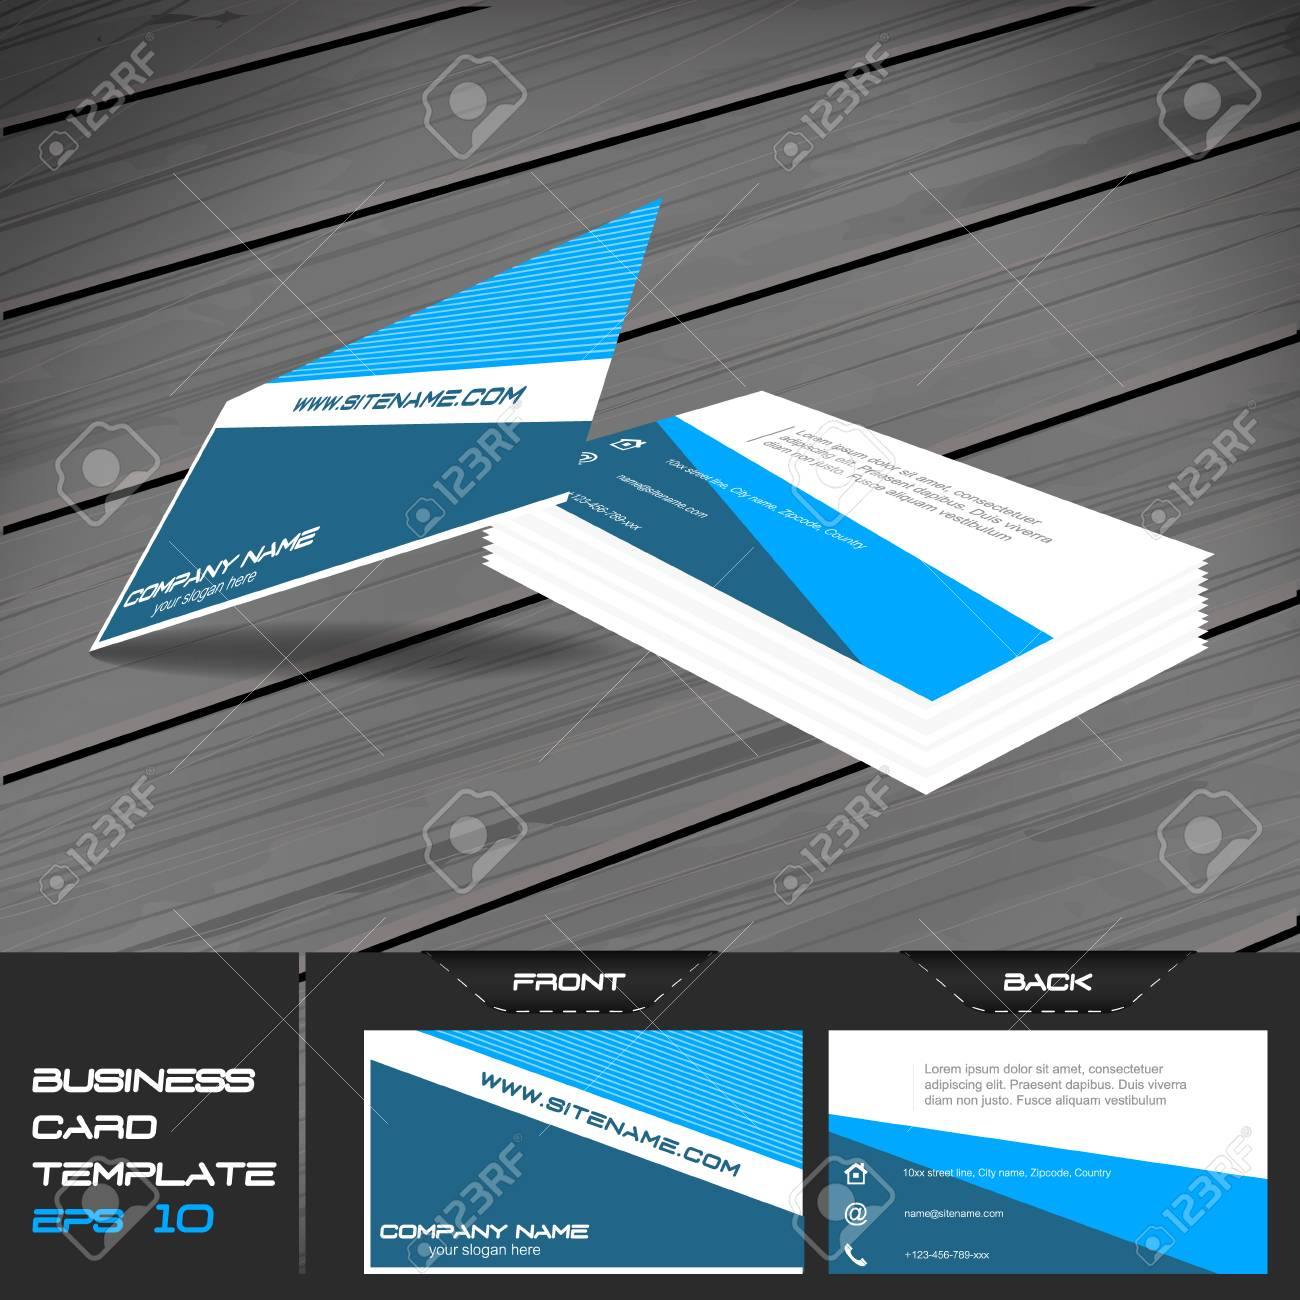 Business card or visiting card template vector illustration business card or visiting card template vector illustration with front and back side stock vector colourmoves